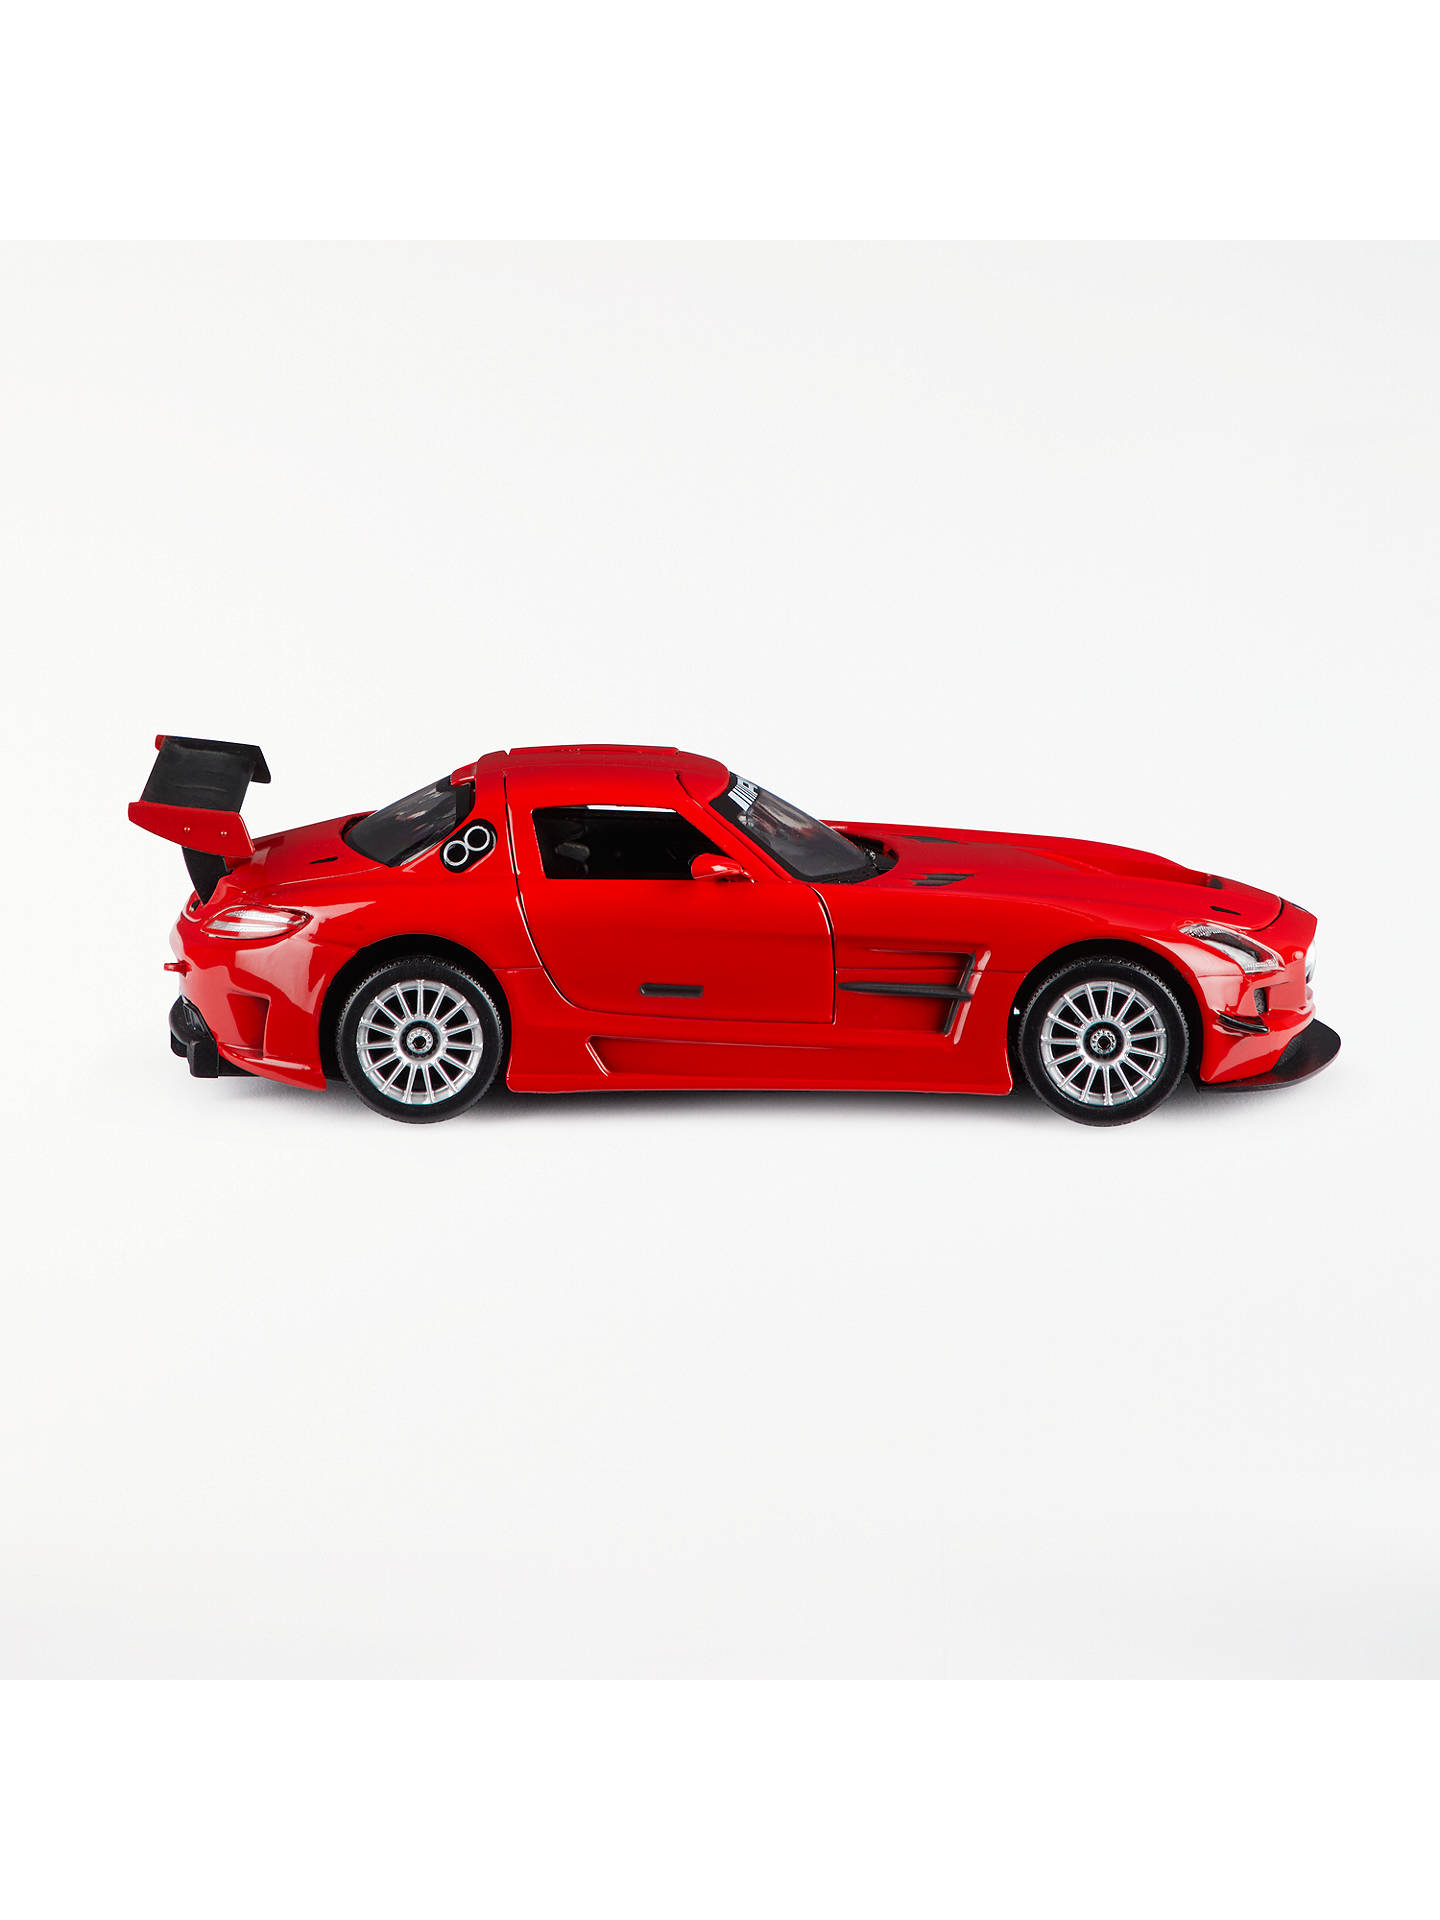 John Lewis Partners 1 24 Mercedes Amg Red Cast Toy Car